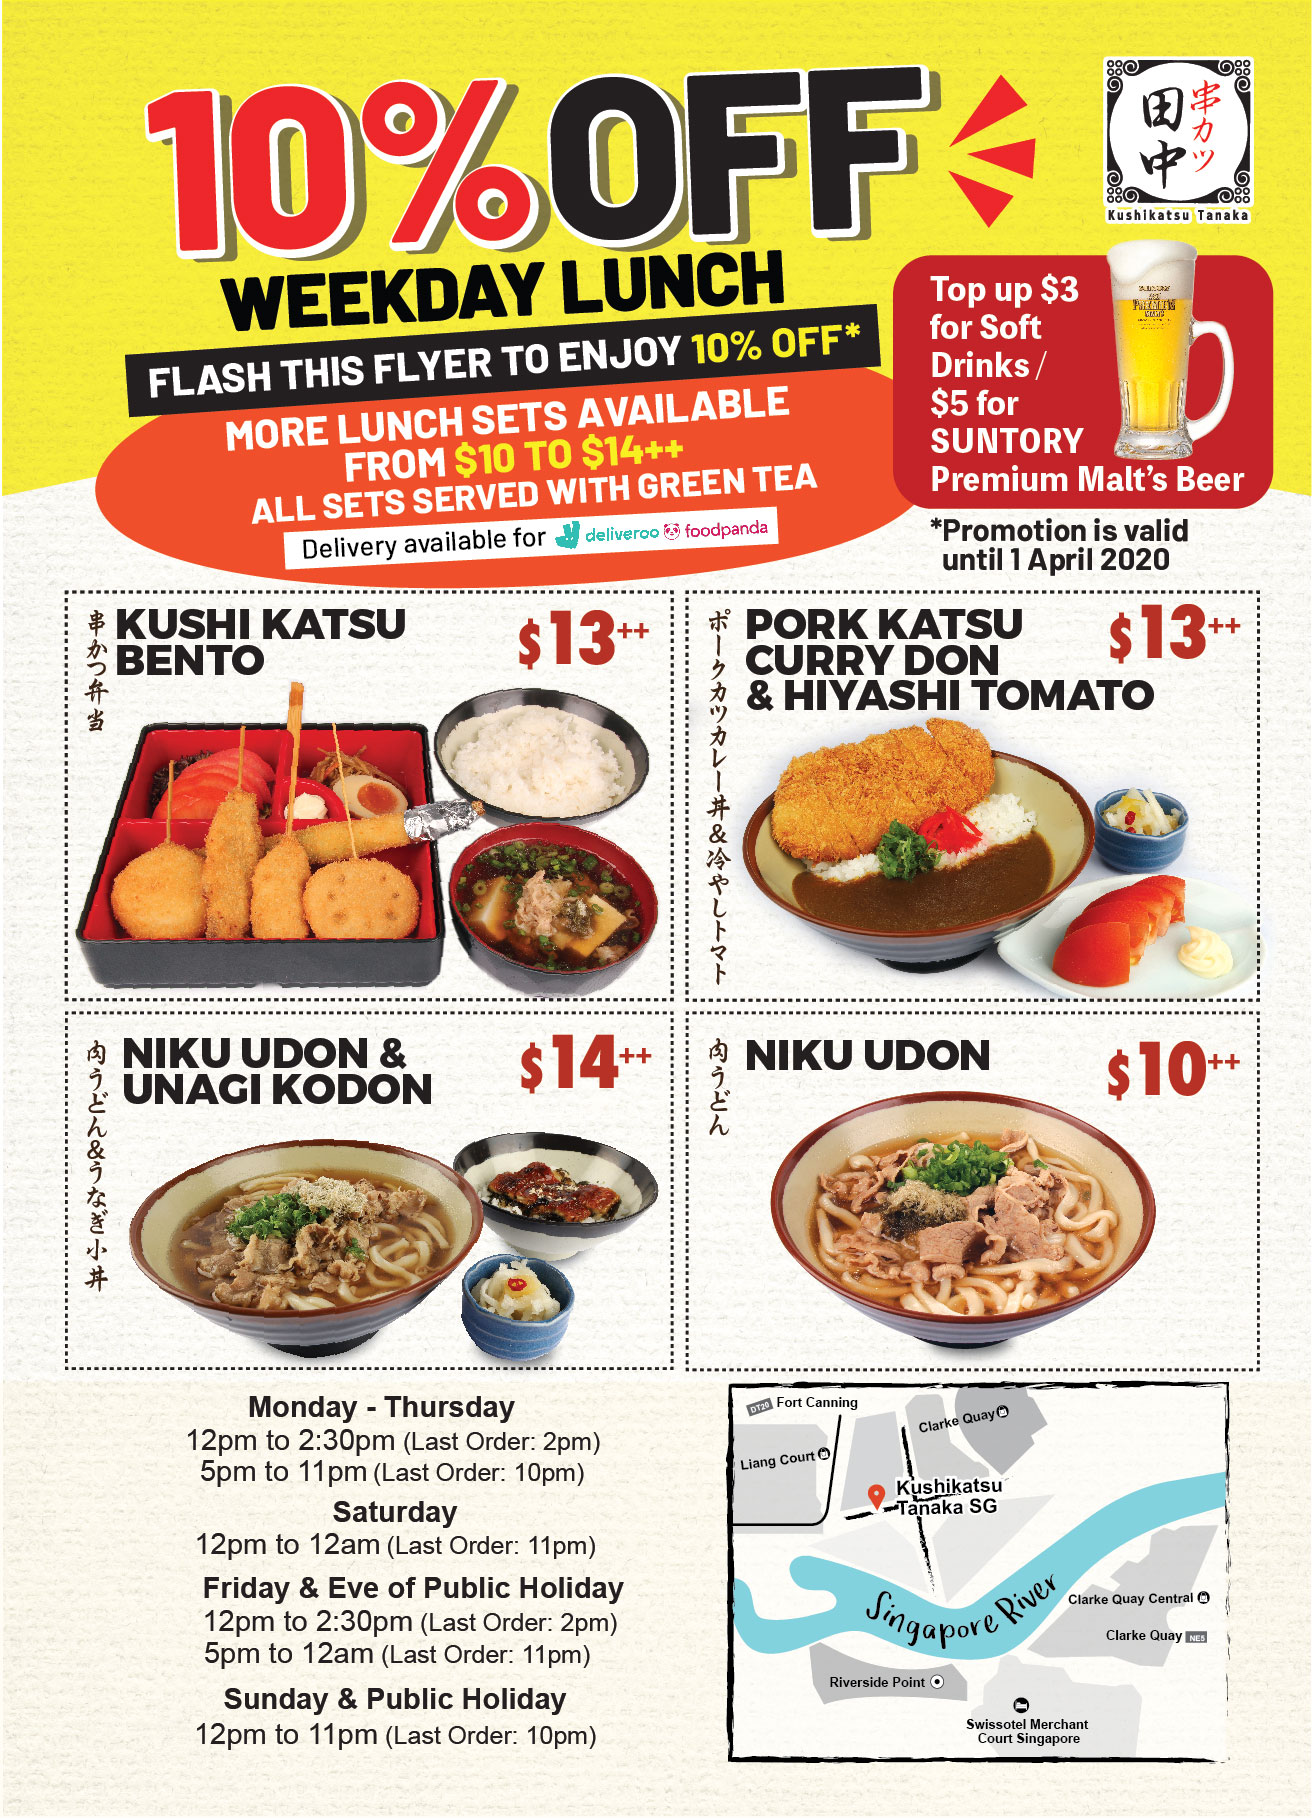 10% OFF Weekday Lunch promotion at Kushikatsu Tanaka from now till 1st April | Why Not Deals & Promotions